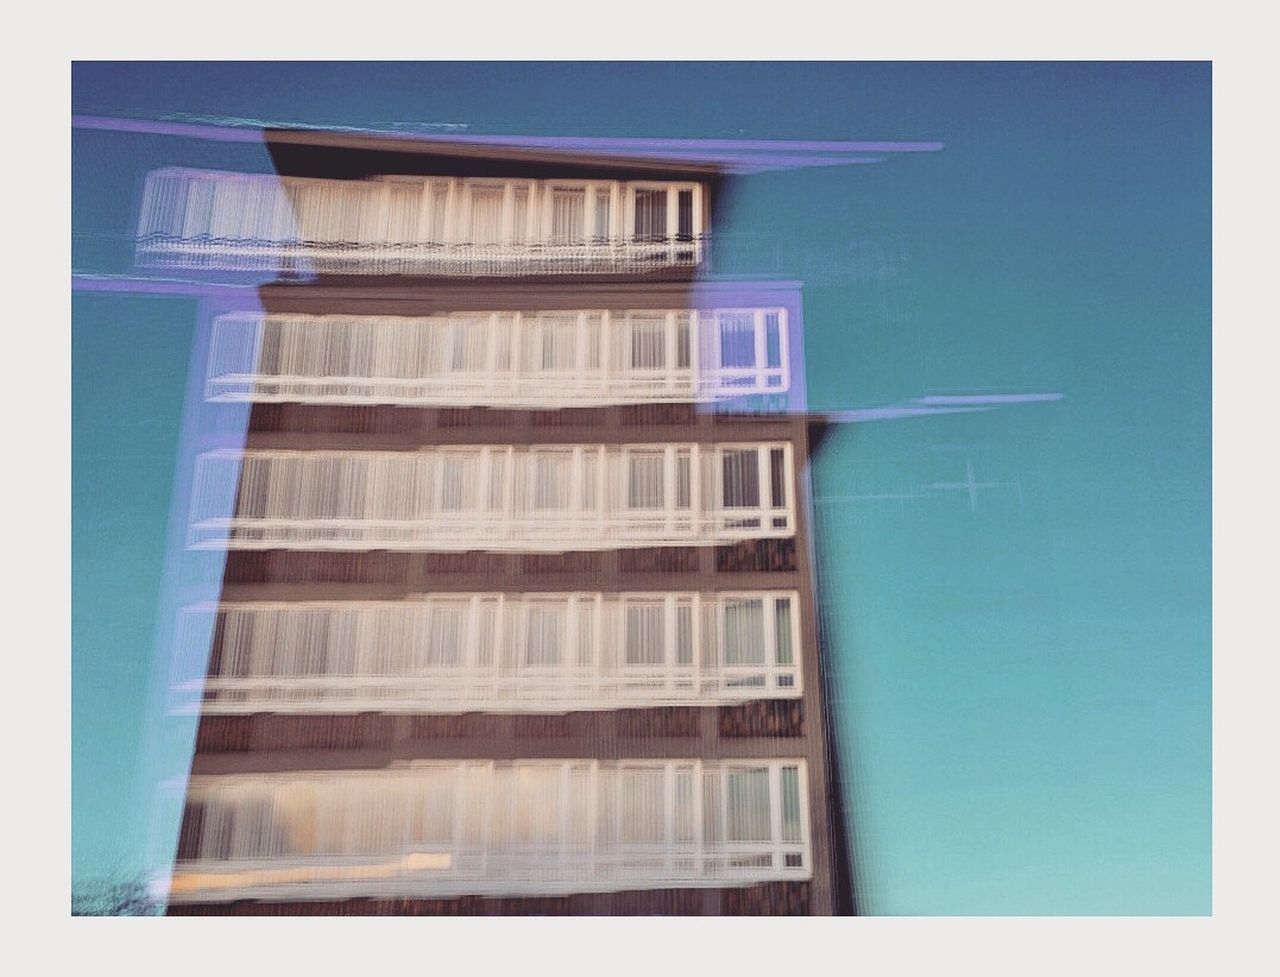 Architecture Romantic Plattenbau No People Built Structure Day City Dresden Andraslaube Photography Light Architecture Shadow Blue Sky